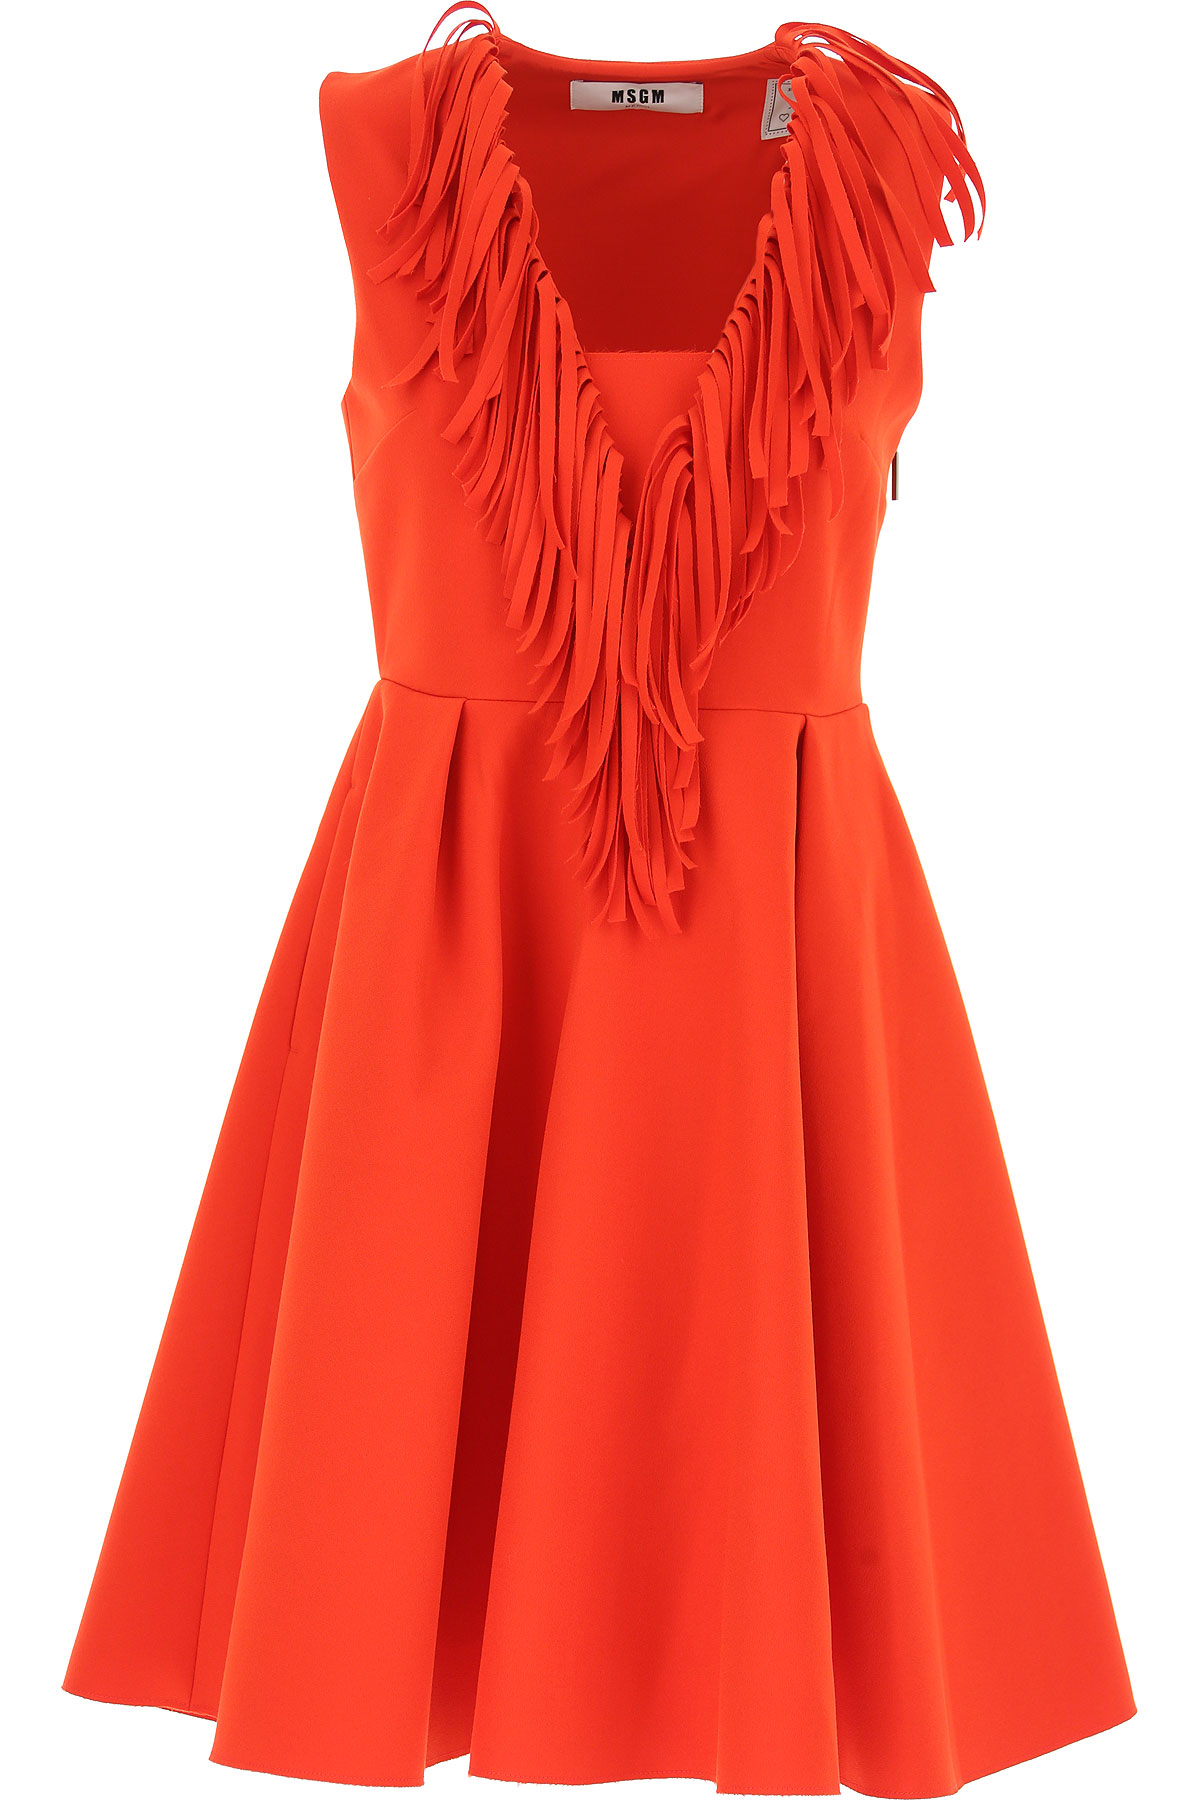 MSGM Dress for Women, Evening Cocktail Party, Red, polyestere, 2017, UK 6 - US 4 - EU 38 UK 10 - US 8 - EU 42